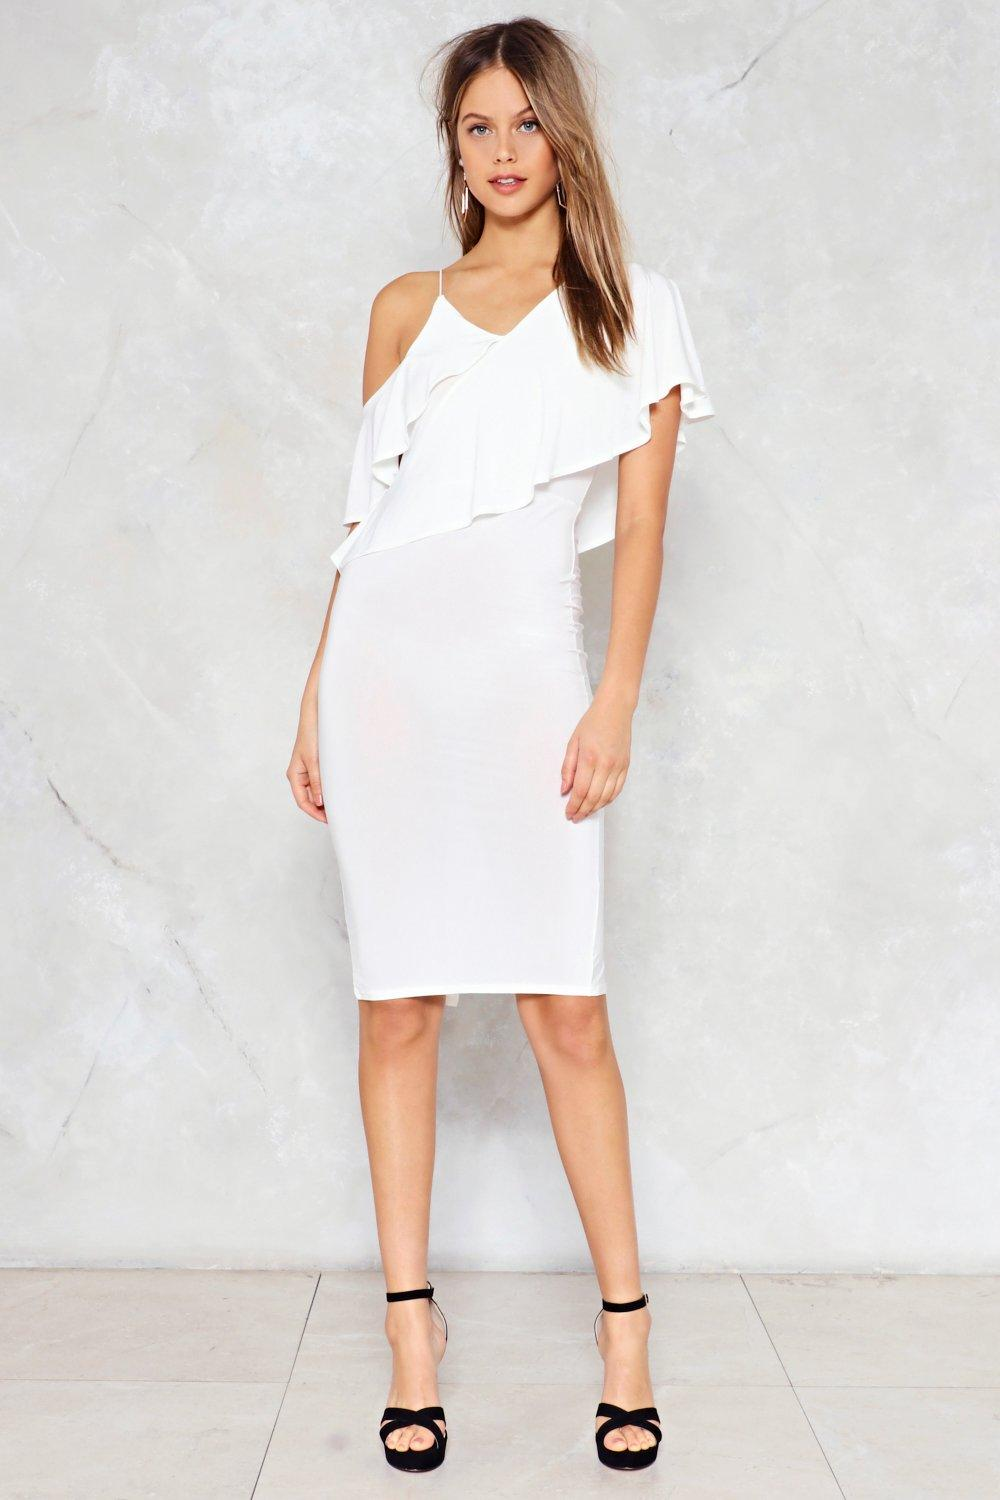 East to West Ruffle Dress | Shop Clothes at Nasty Gal!